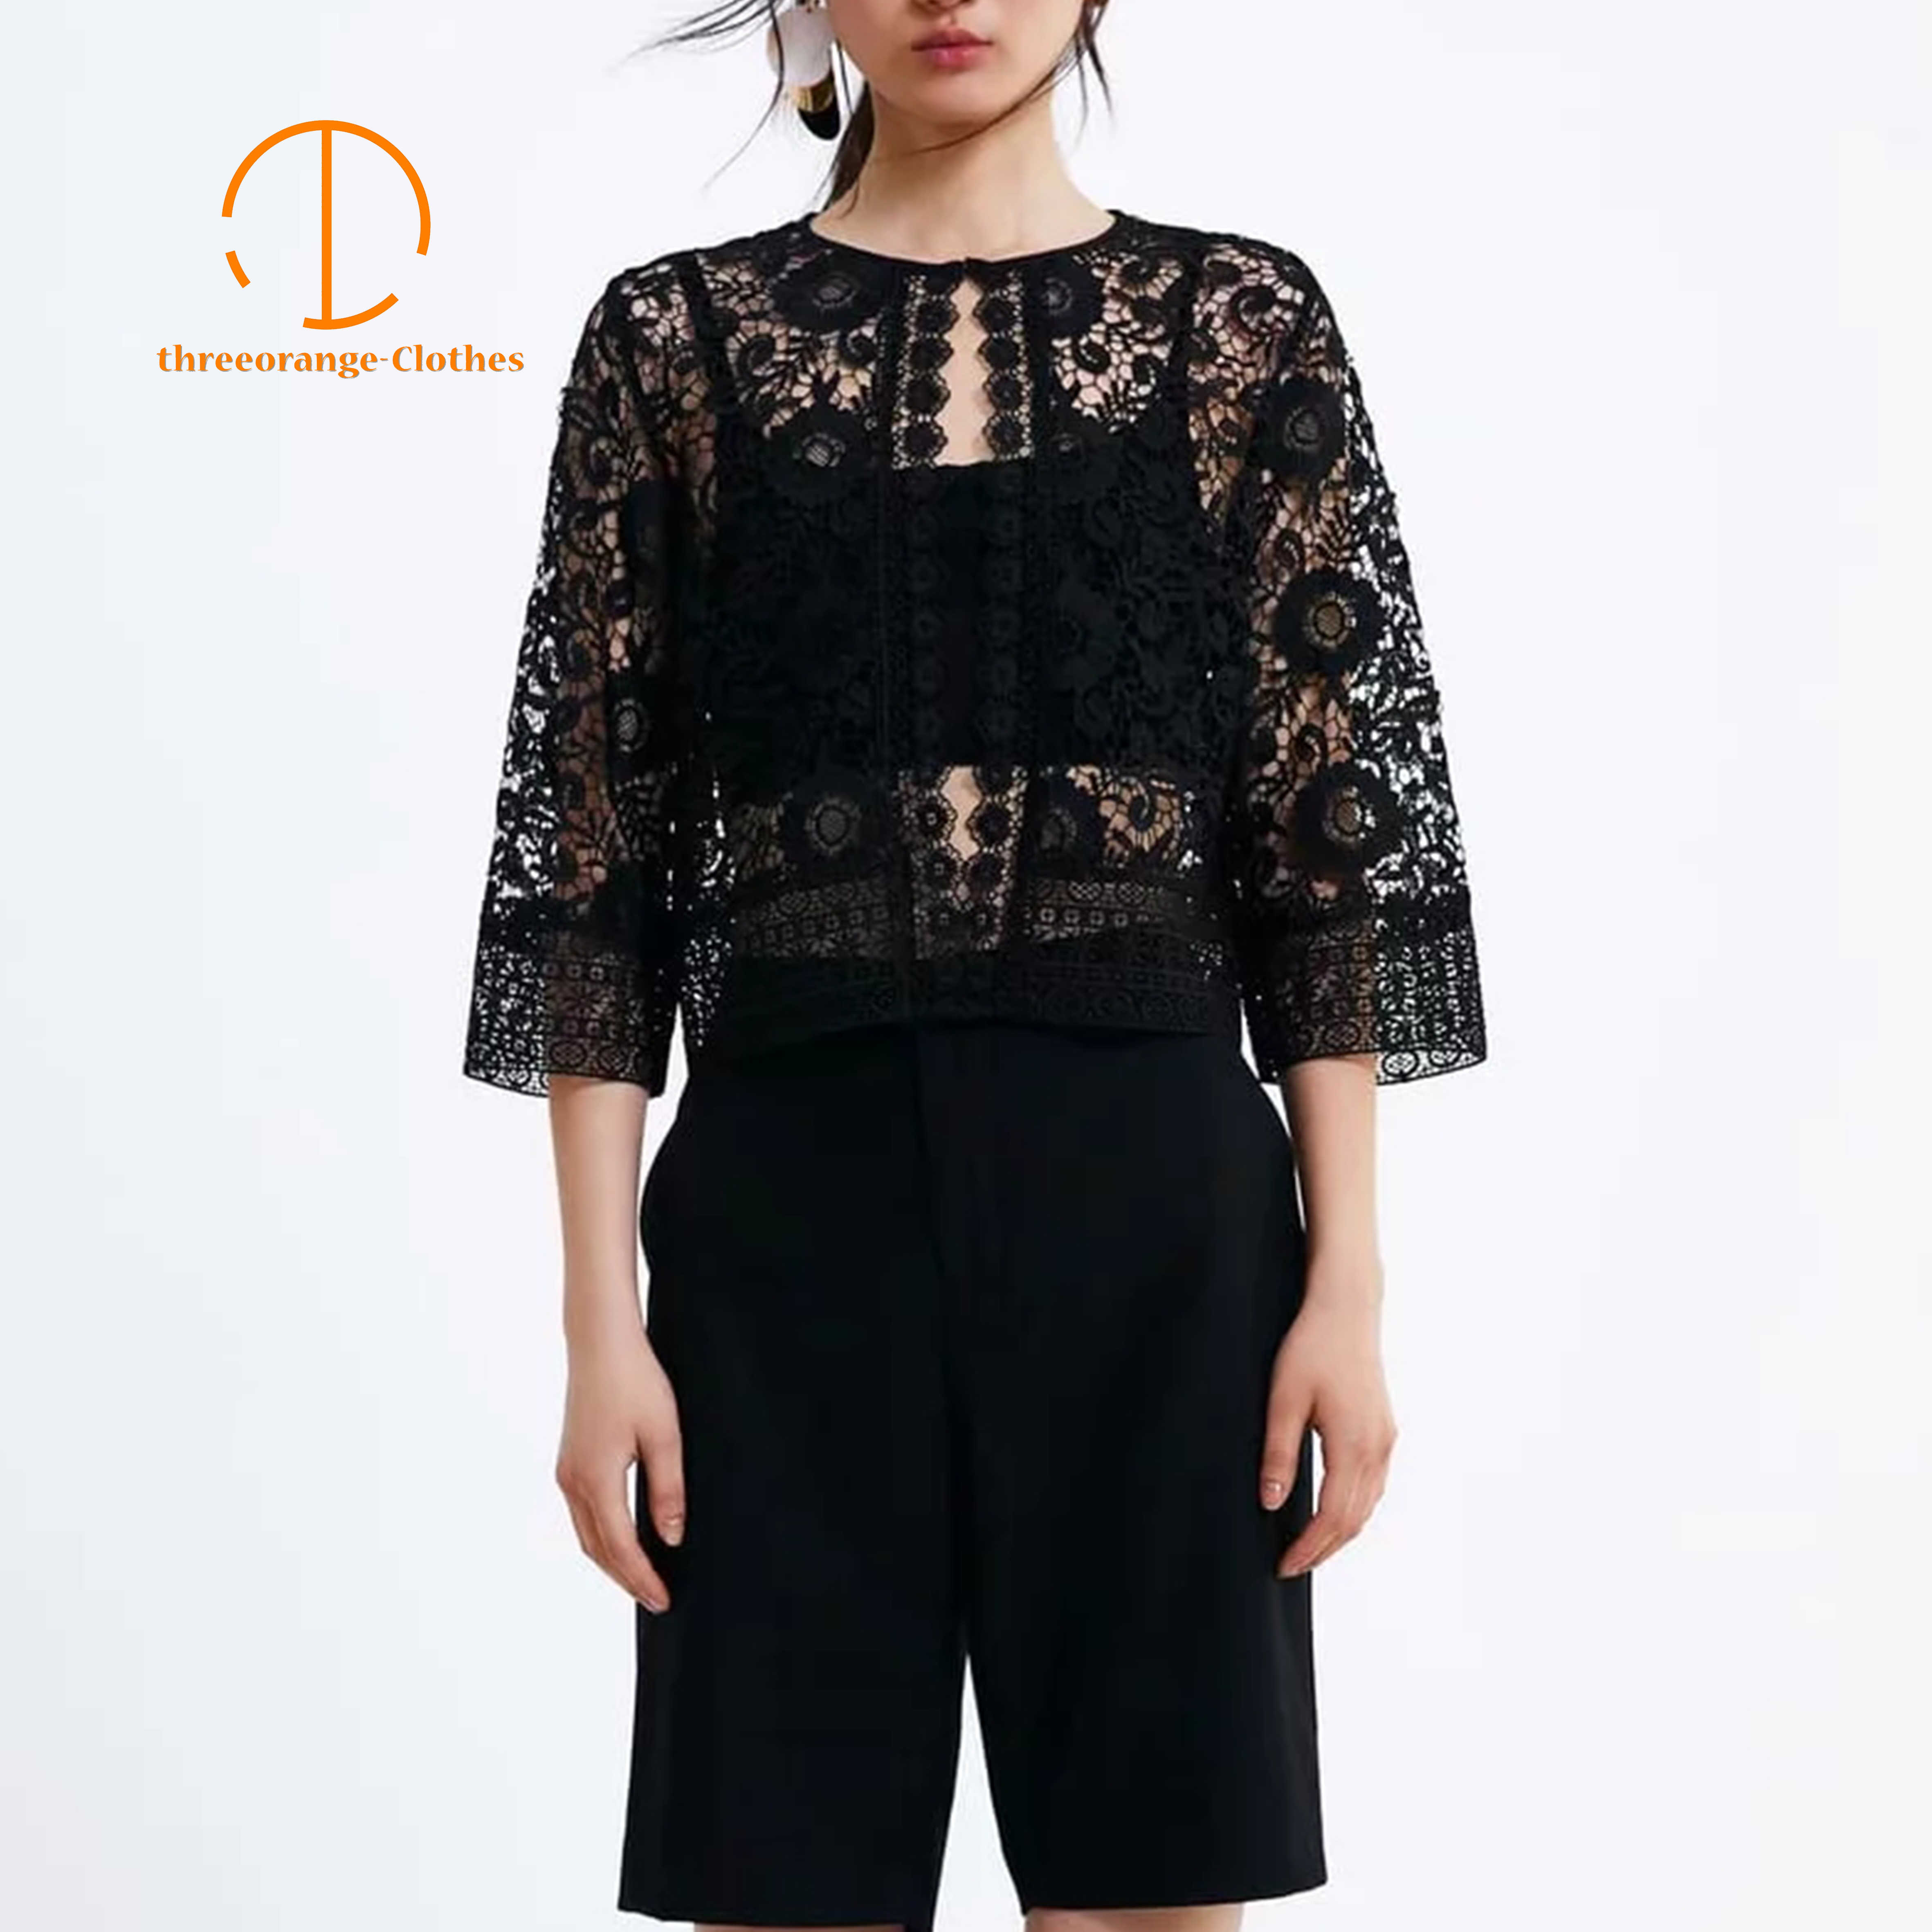 NEW ZA Design Summer Blouse shirt Women Sexy Hollow out netted BlackLace Vintage Delicate Floral Pattern See-through Blouse Coat